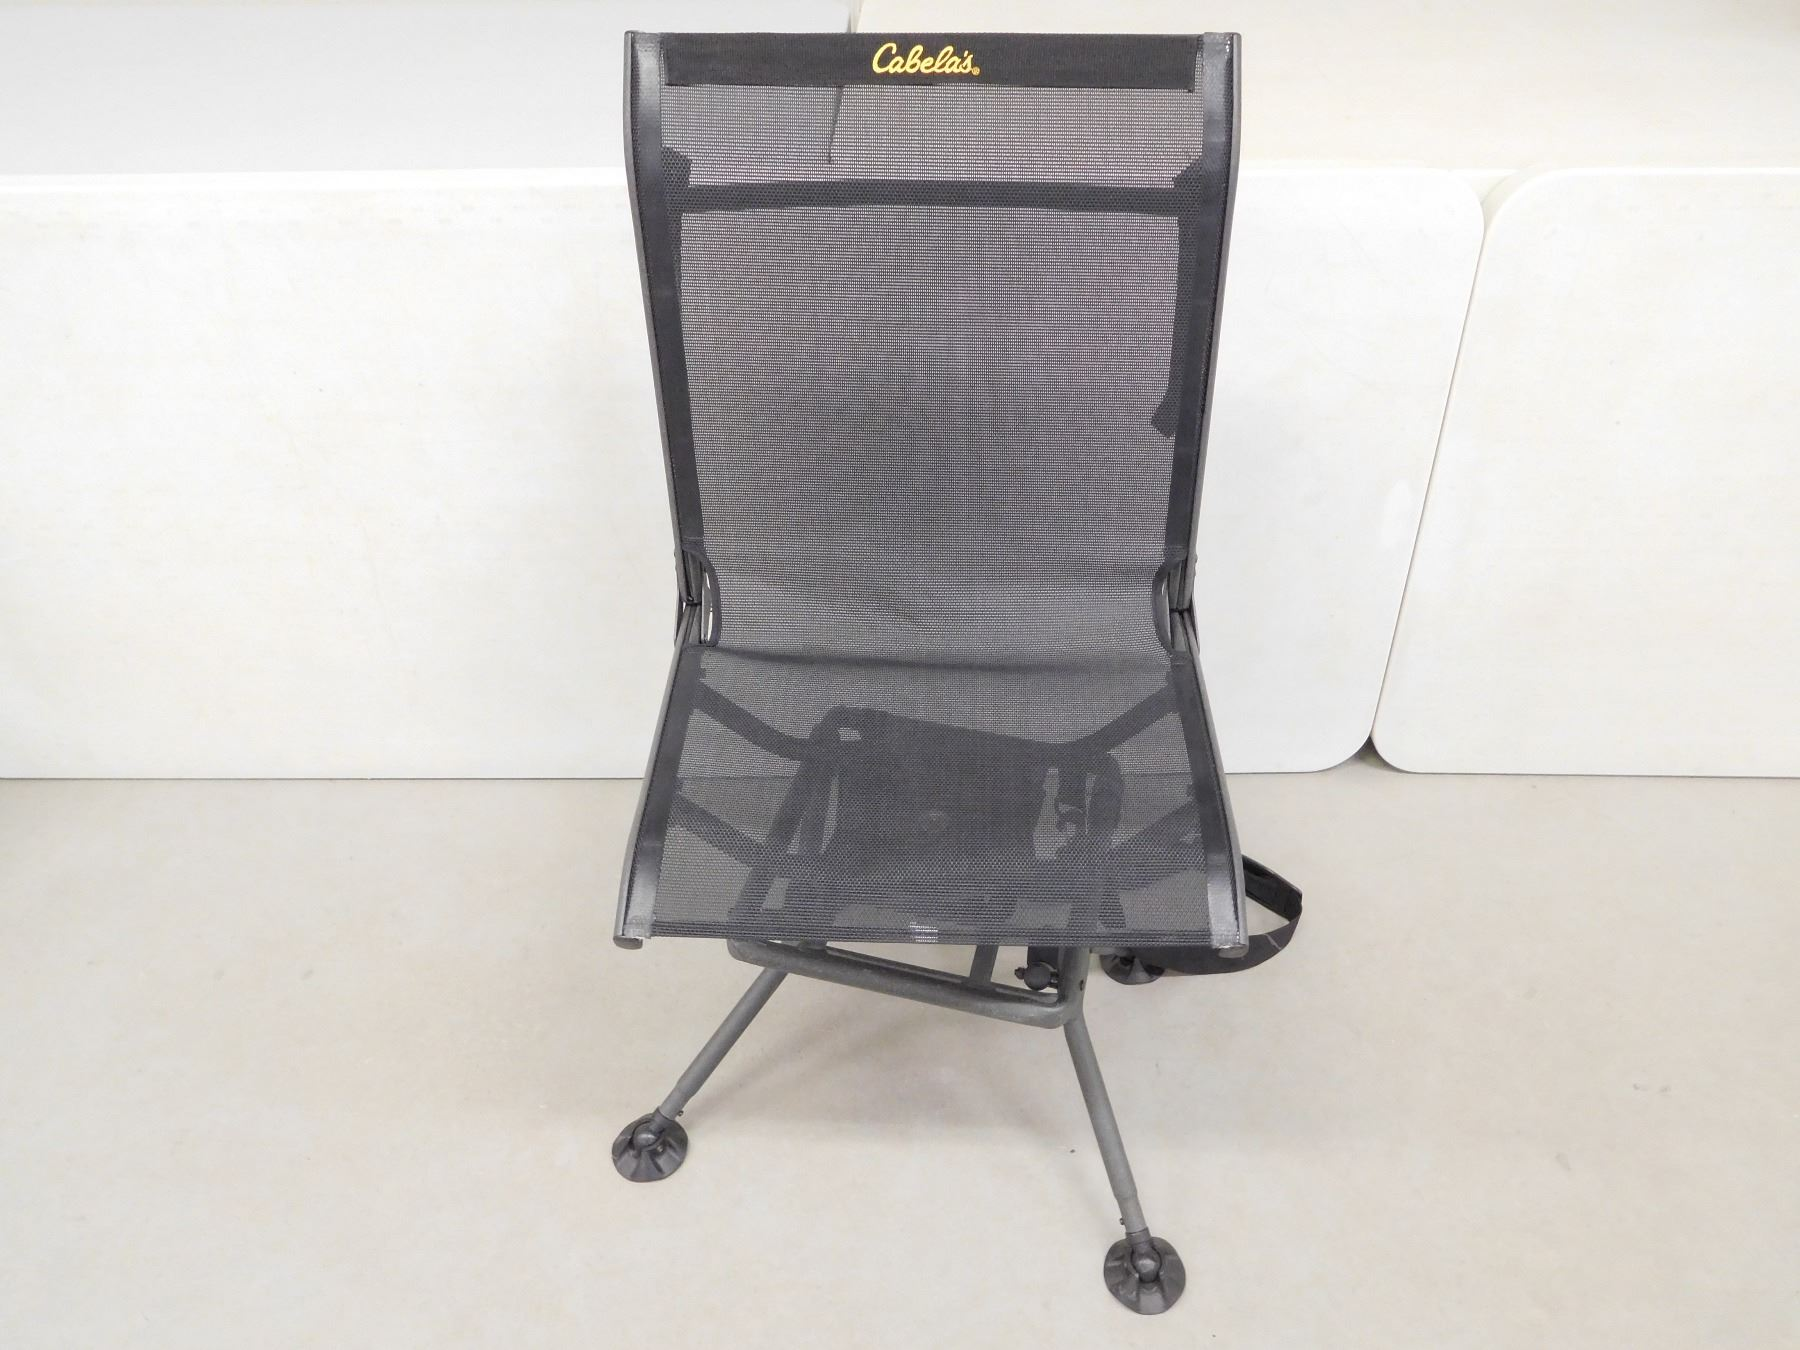 ... Image 3  CABELAS FOLDING CHAIR & CABELAS FOLDING CHAIR